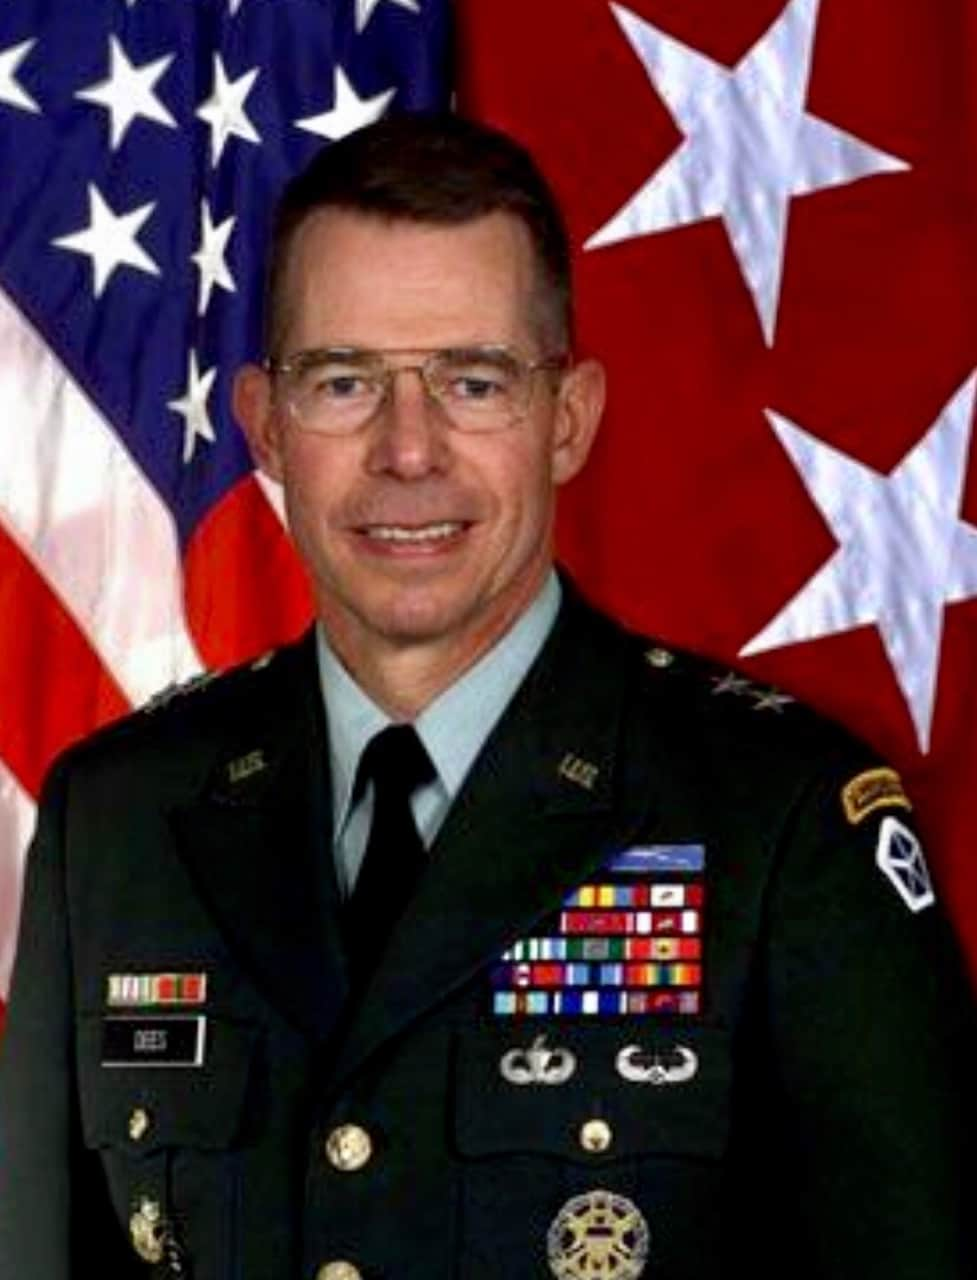 Major General (Retired) Bob Dees